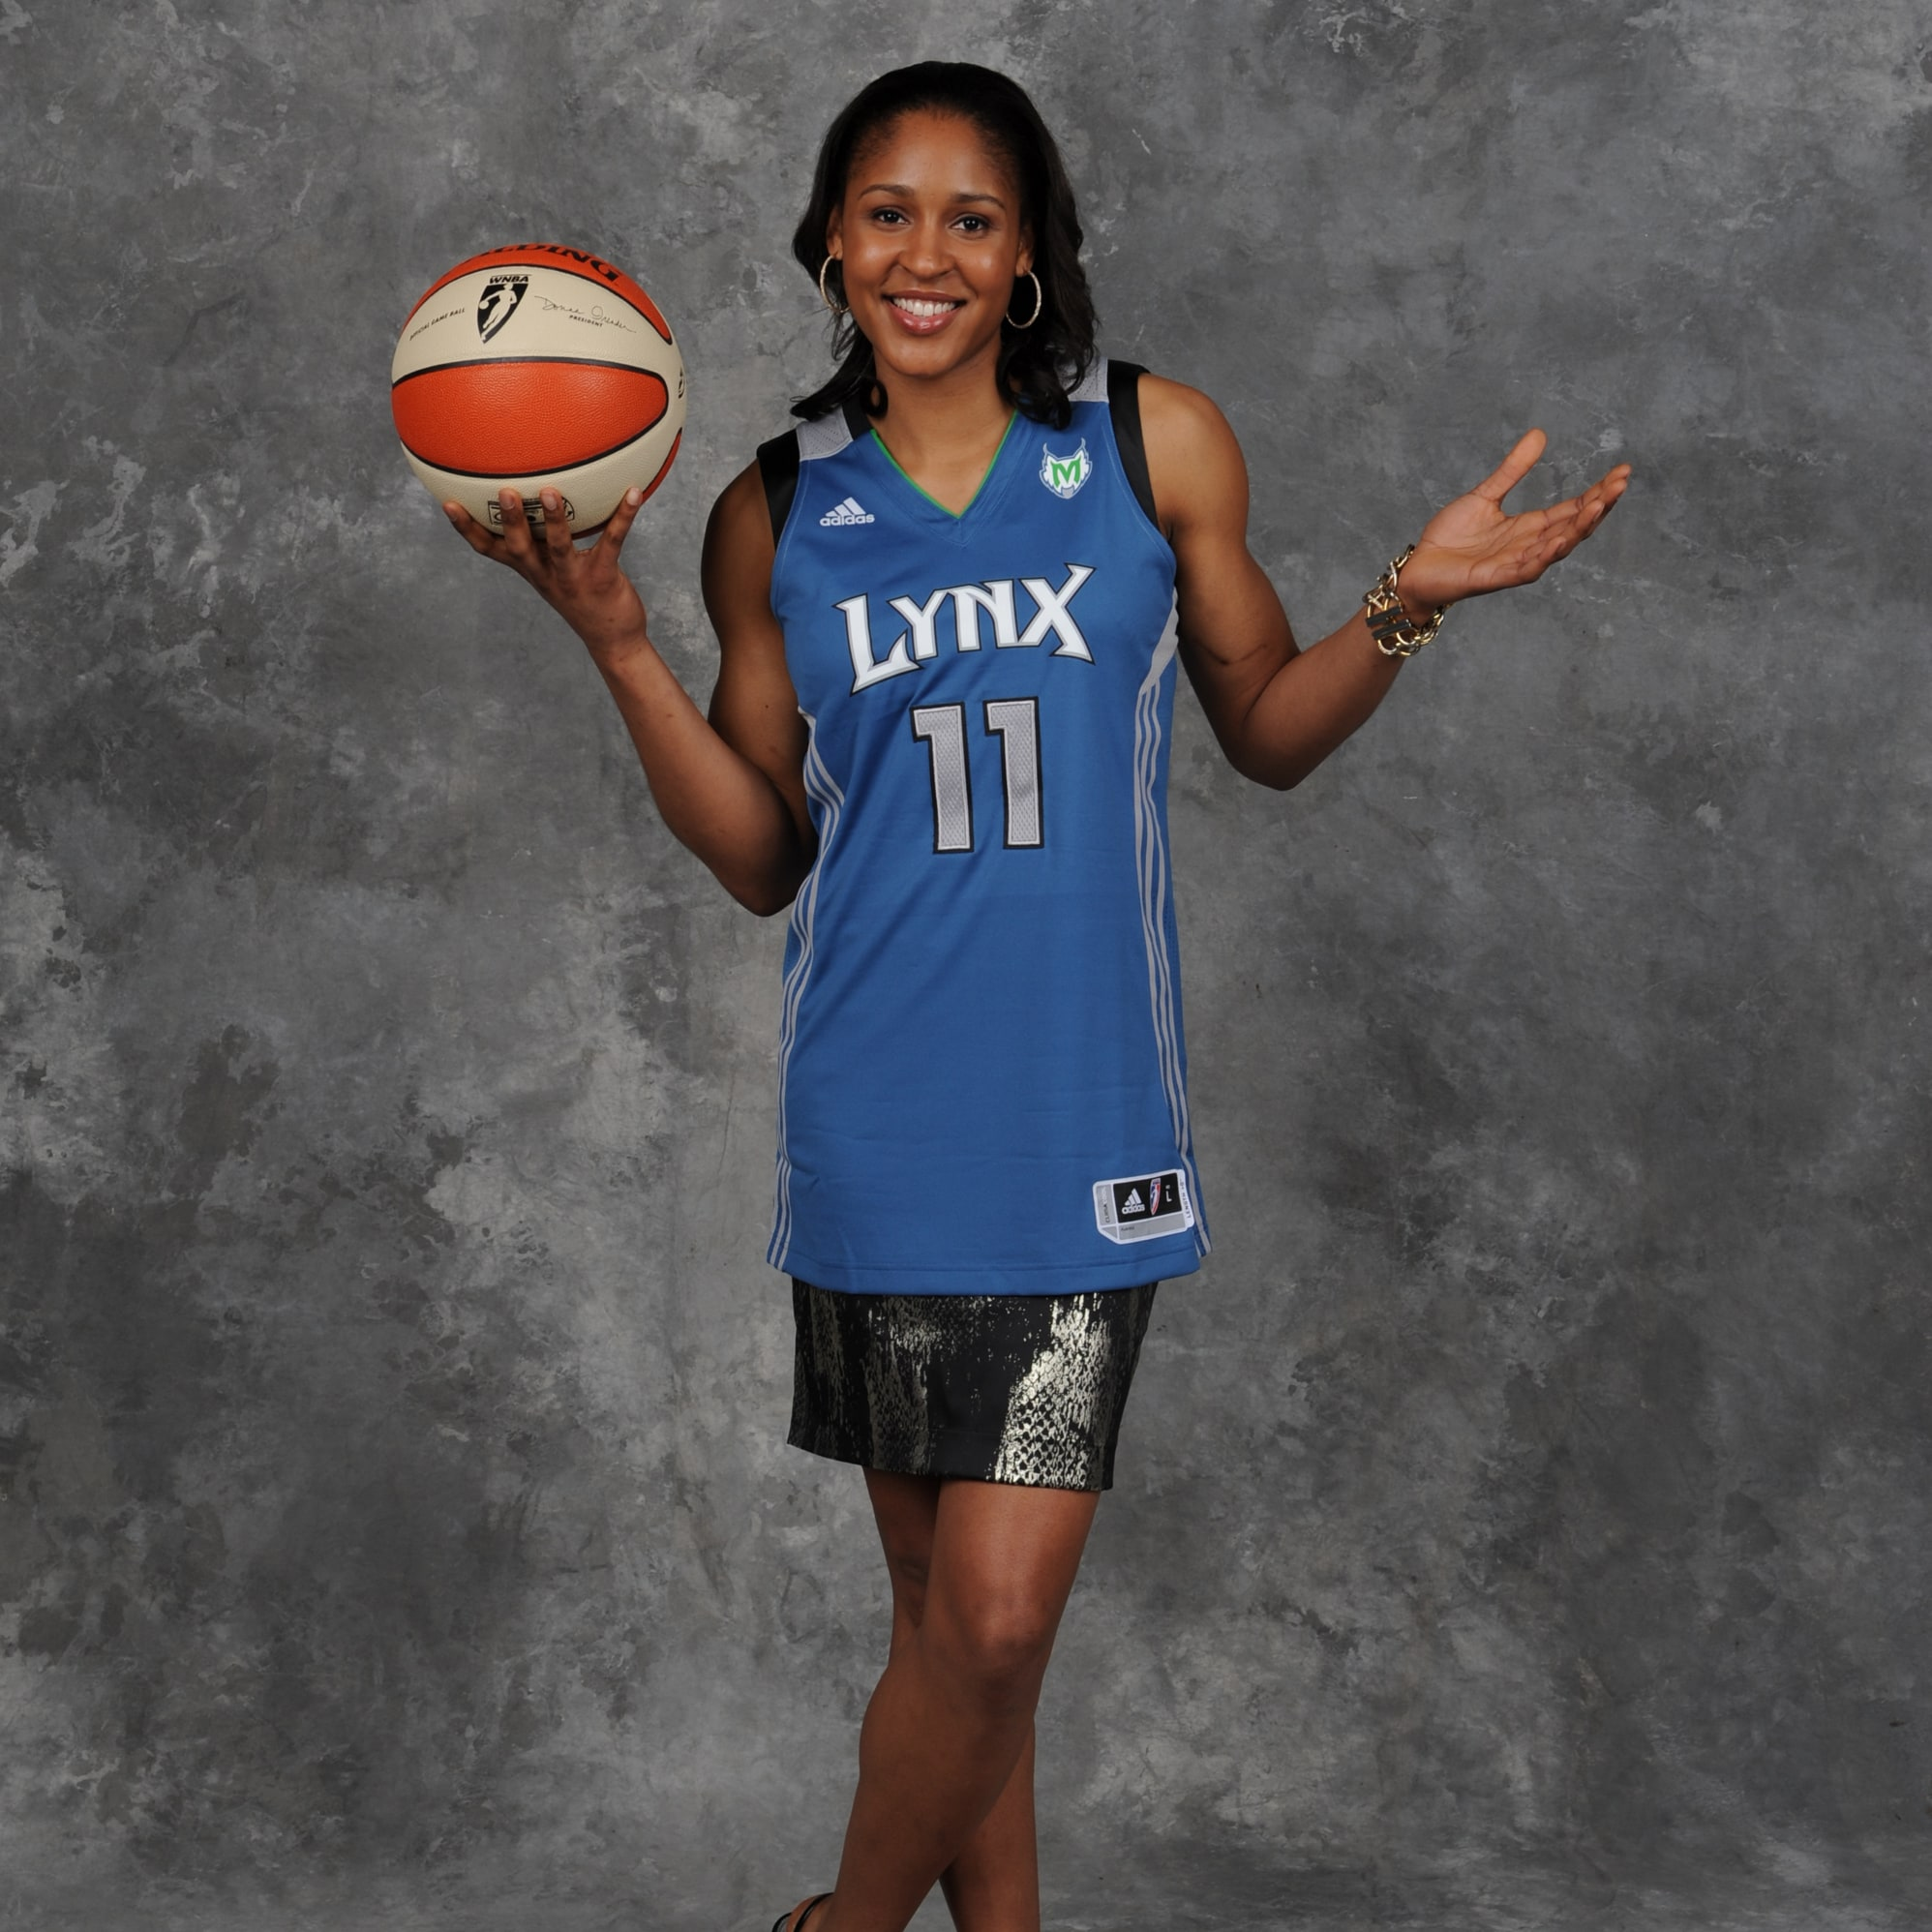 BRISTOL, CT - APRIL 11:  The number one overall pick Maya Moore  of the Minnesota Lynx poses for a portrait during the 2011 WNBA Draft Presented By Adidas on April 11, 2011 at ESPN in Bristol, Connecticut.  NOTE TO USER: User expressly acknowledges and agrees that, by downloading and/or using this Photograph, user is consenting to the terms and conditions of the Getty Images License Agreement. Mandatory Copyright Notice: Copyright 2011 NBAE  (Photo byJennifer Pottheiser/NBAE/Getty Images) *** Local Caption *** Maya Moore